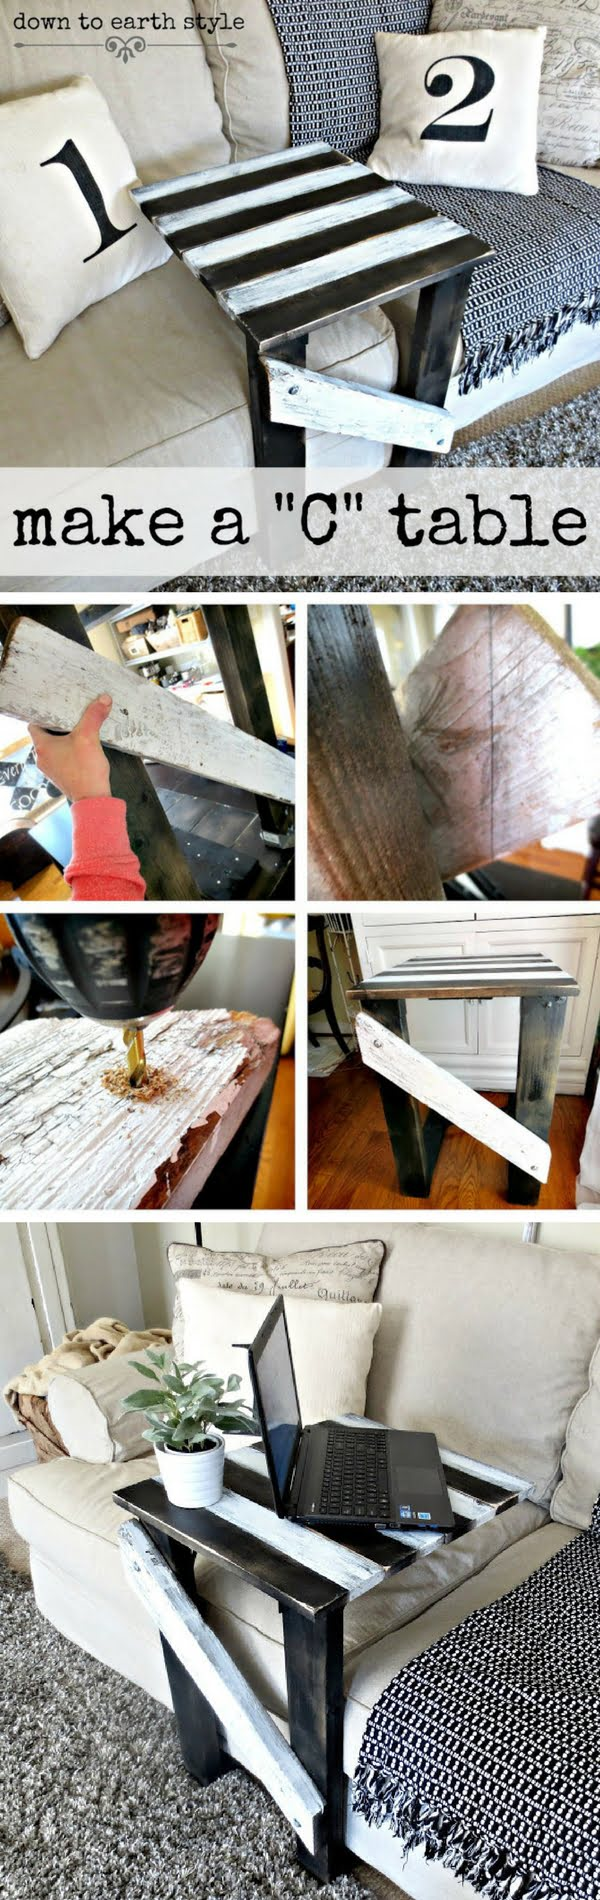 18 Easy DIY Sofa Side Tables You Can Build on a Budget - Check out the tutorial how make a DIY sofa side c-table